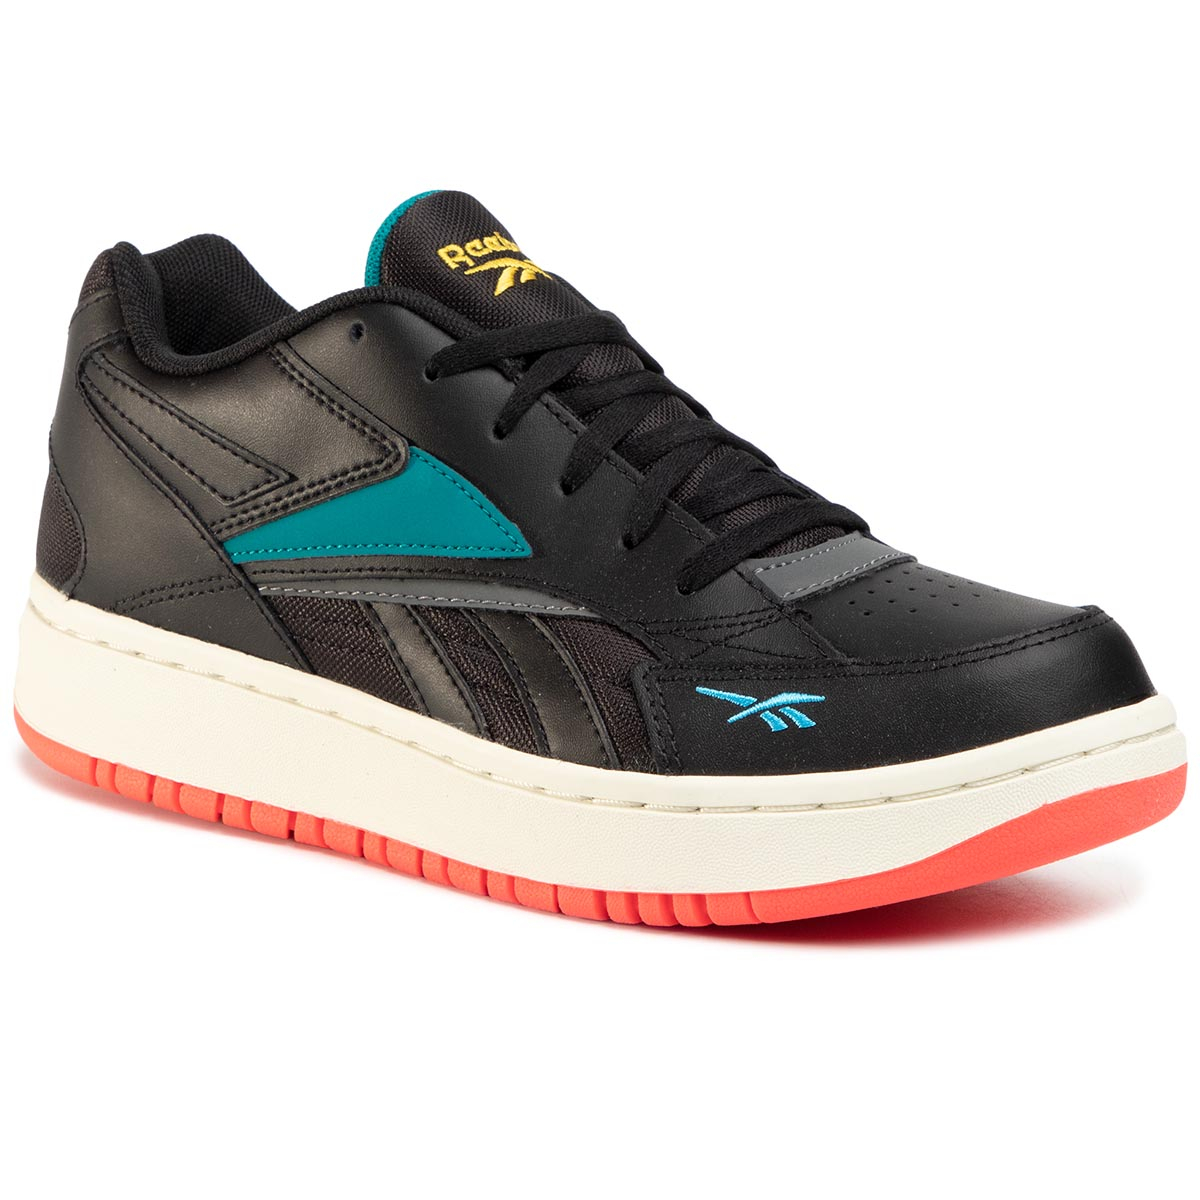 Pantofi Reebok - Court Double Mix EH3280 Black/Pugry6/Seatea